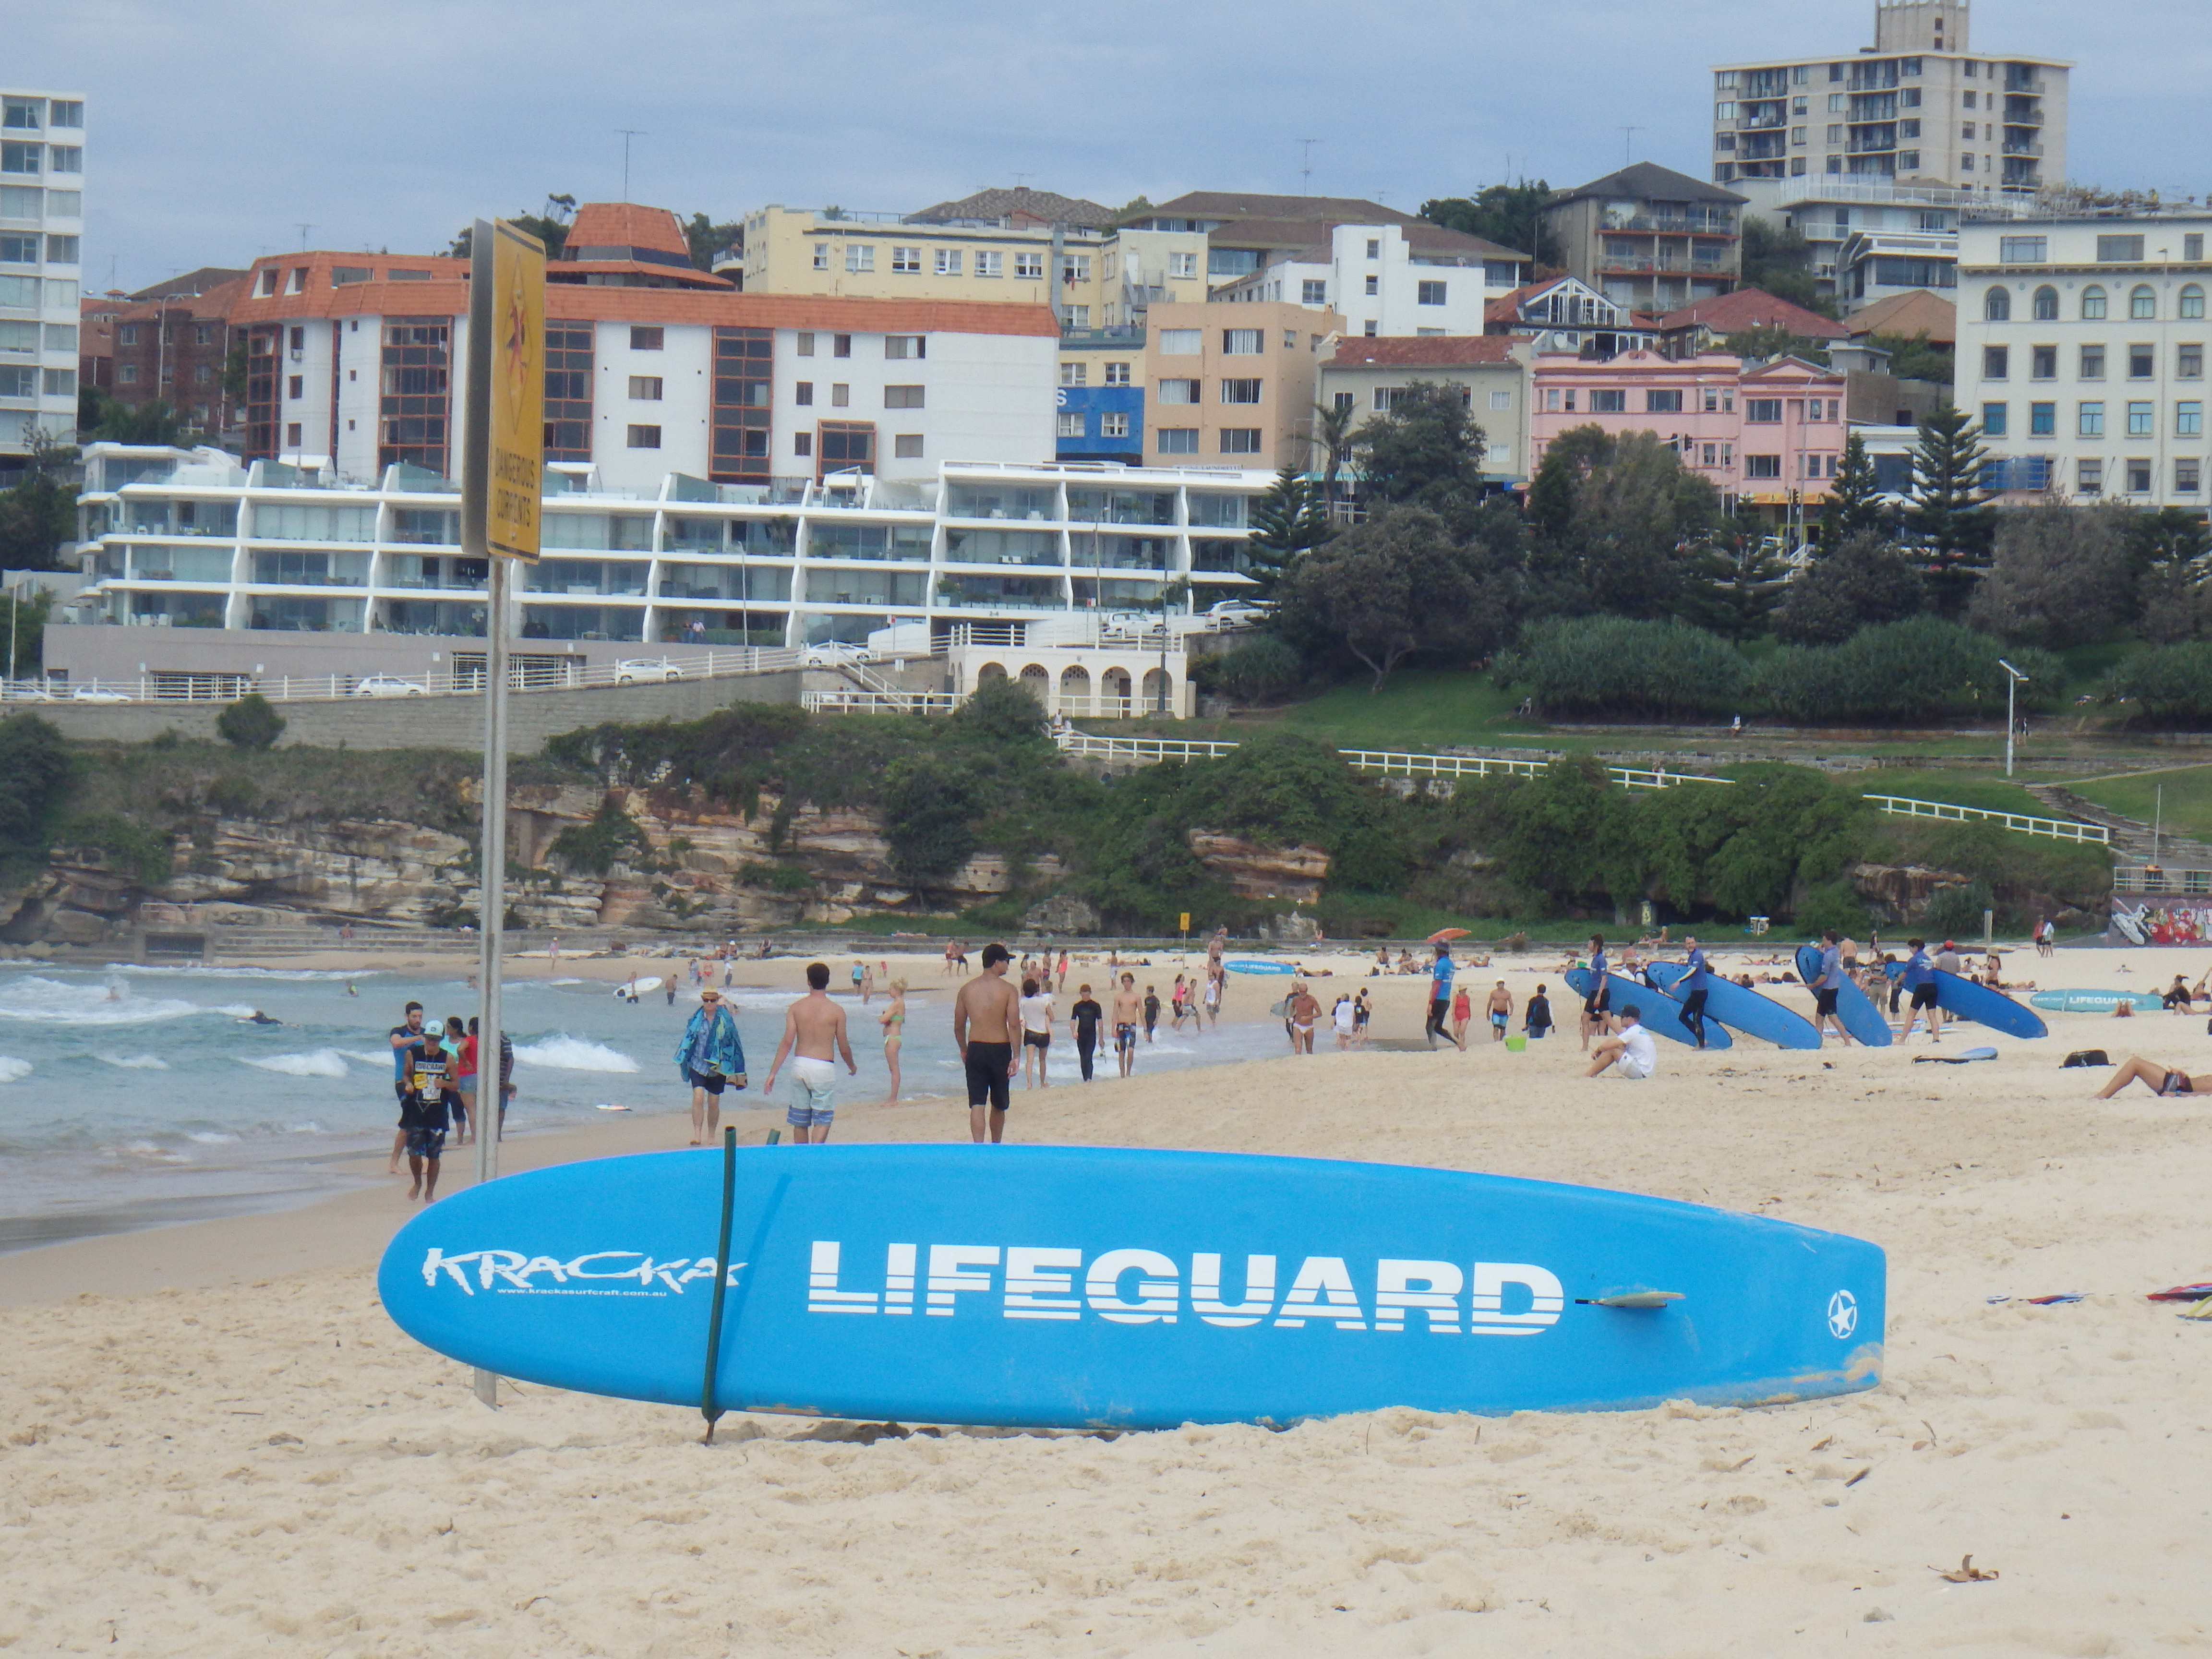 Lifeguard Surf board Bondi